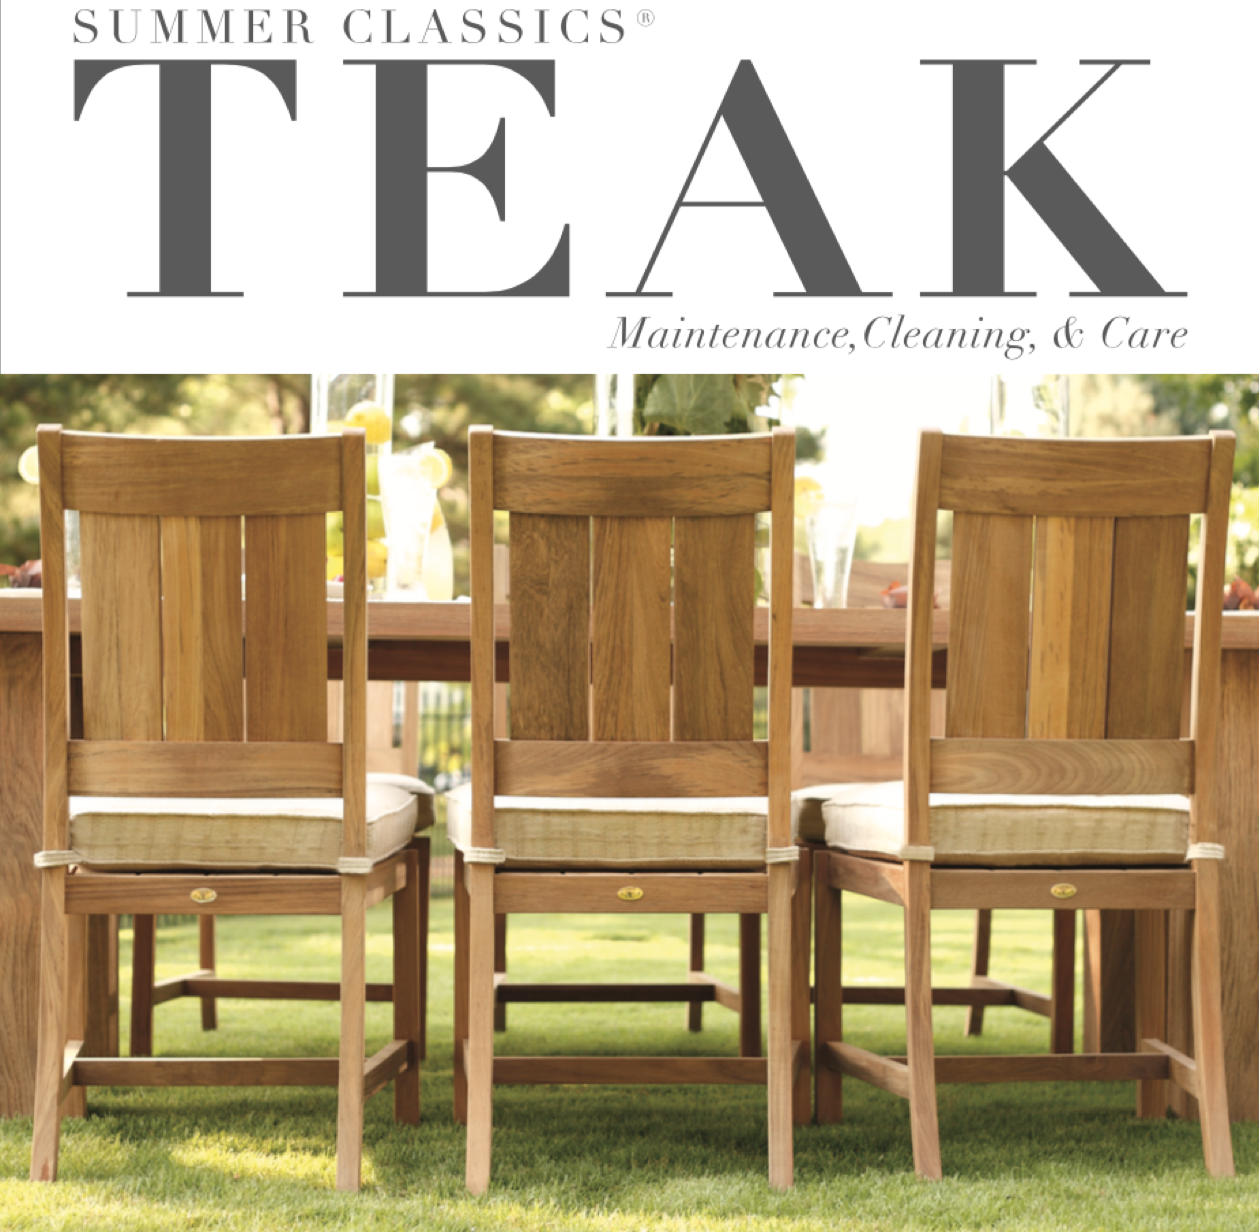 Summer Clics Teak Is Made Of The Highest Quality Slow Growth Plantation Raised